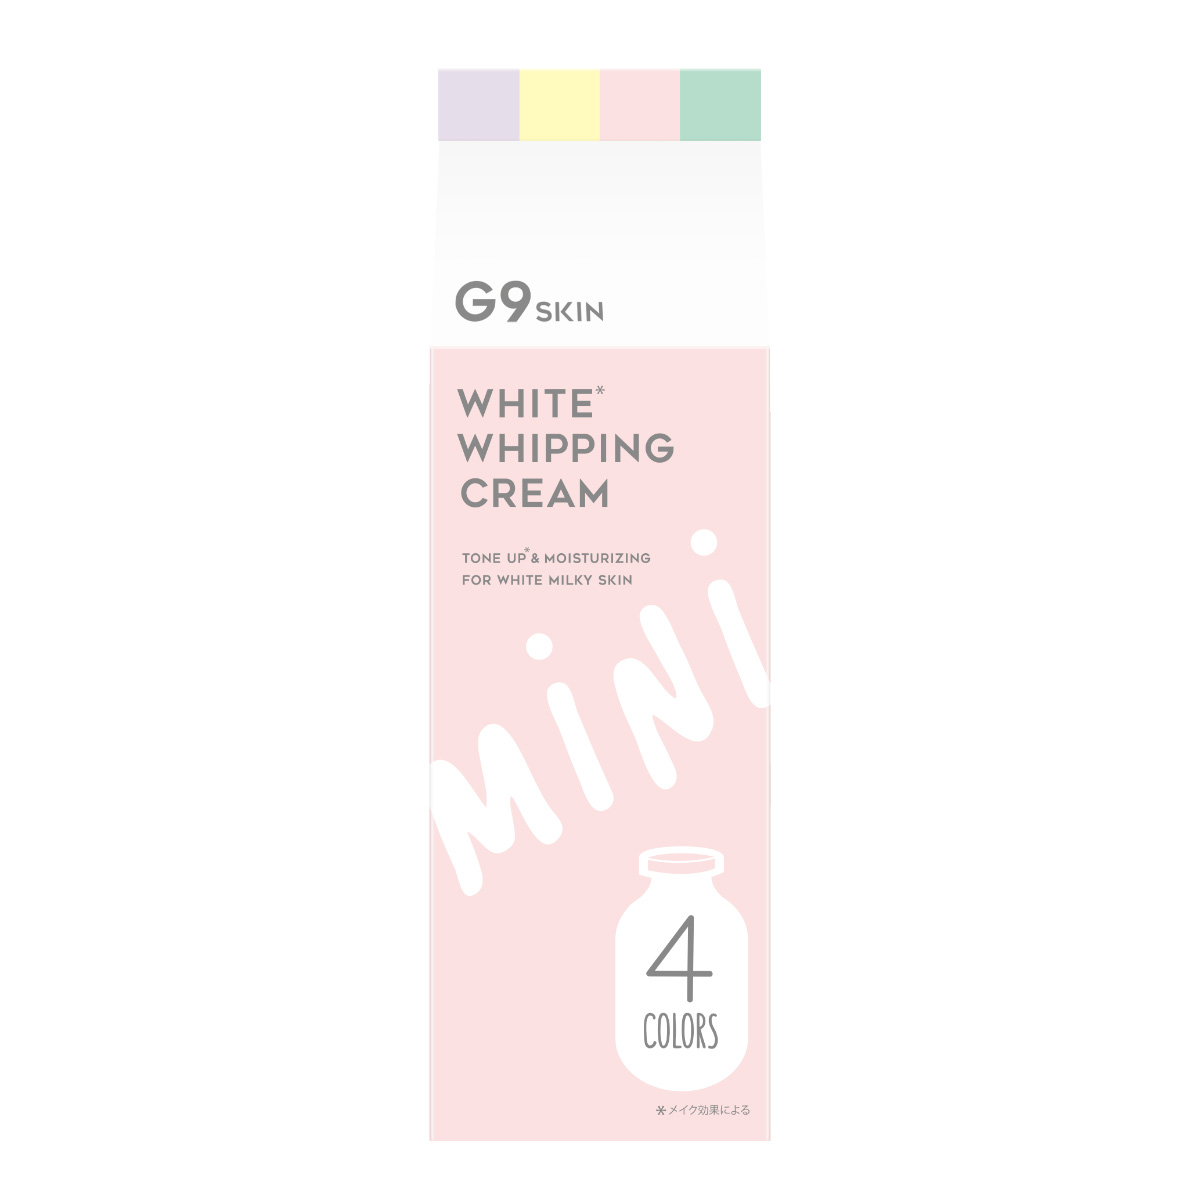 G9 WHITE WHIPPING CREAM 4 Colors